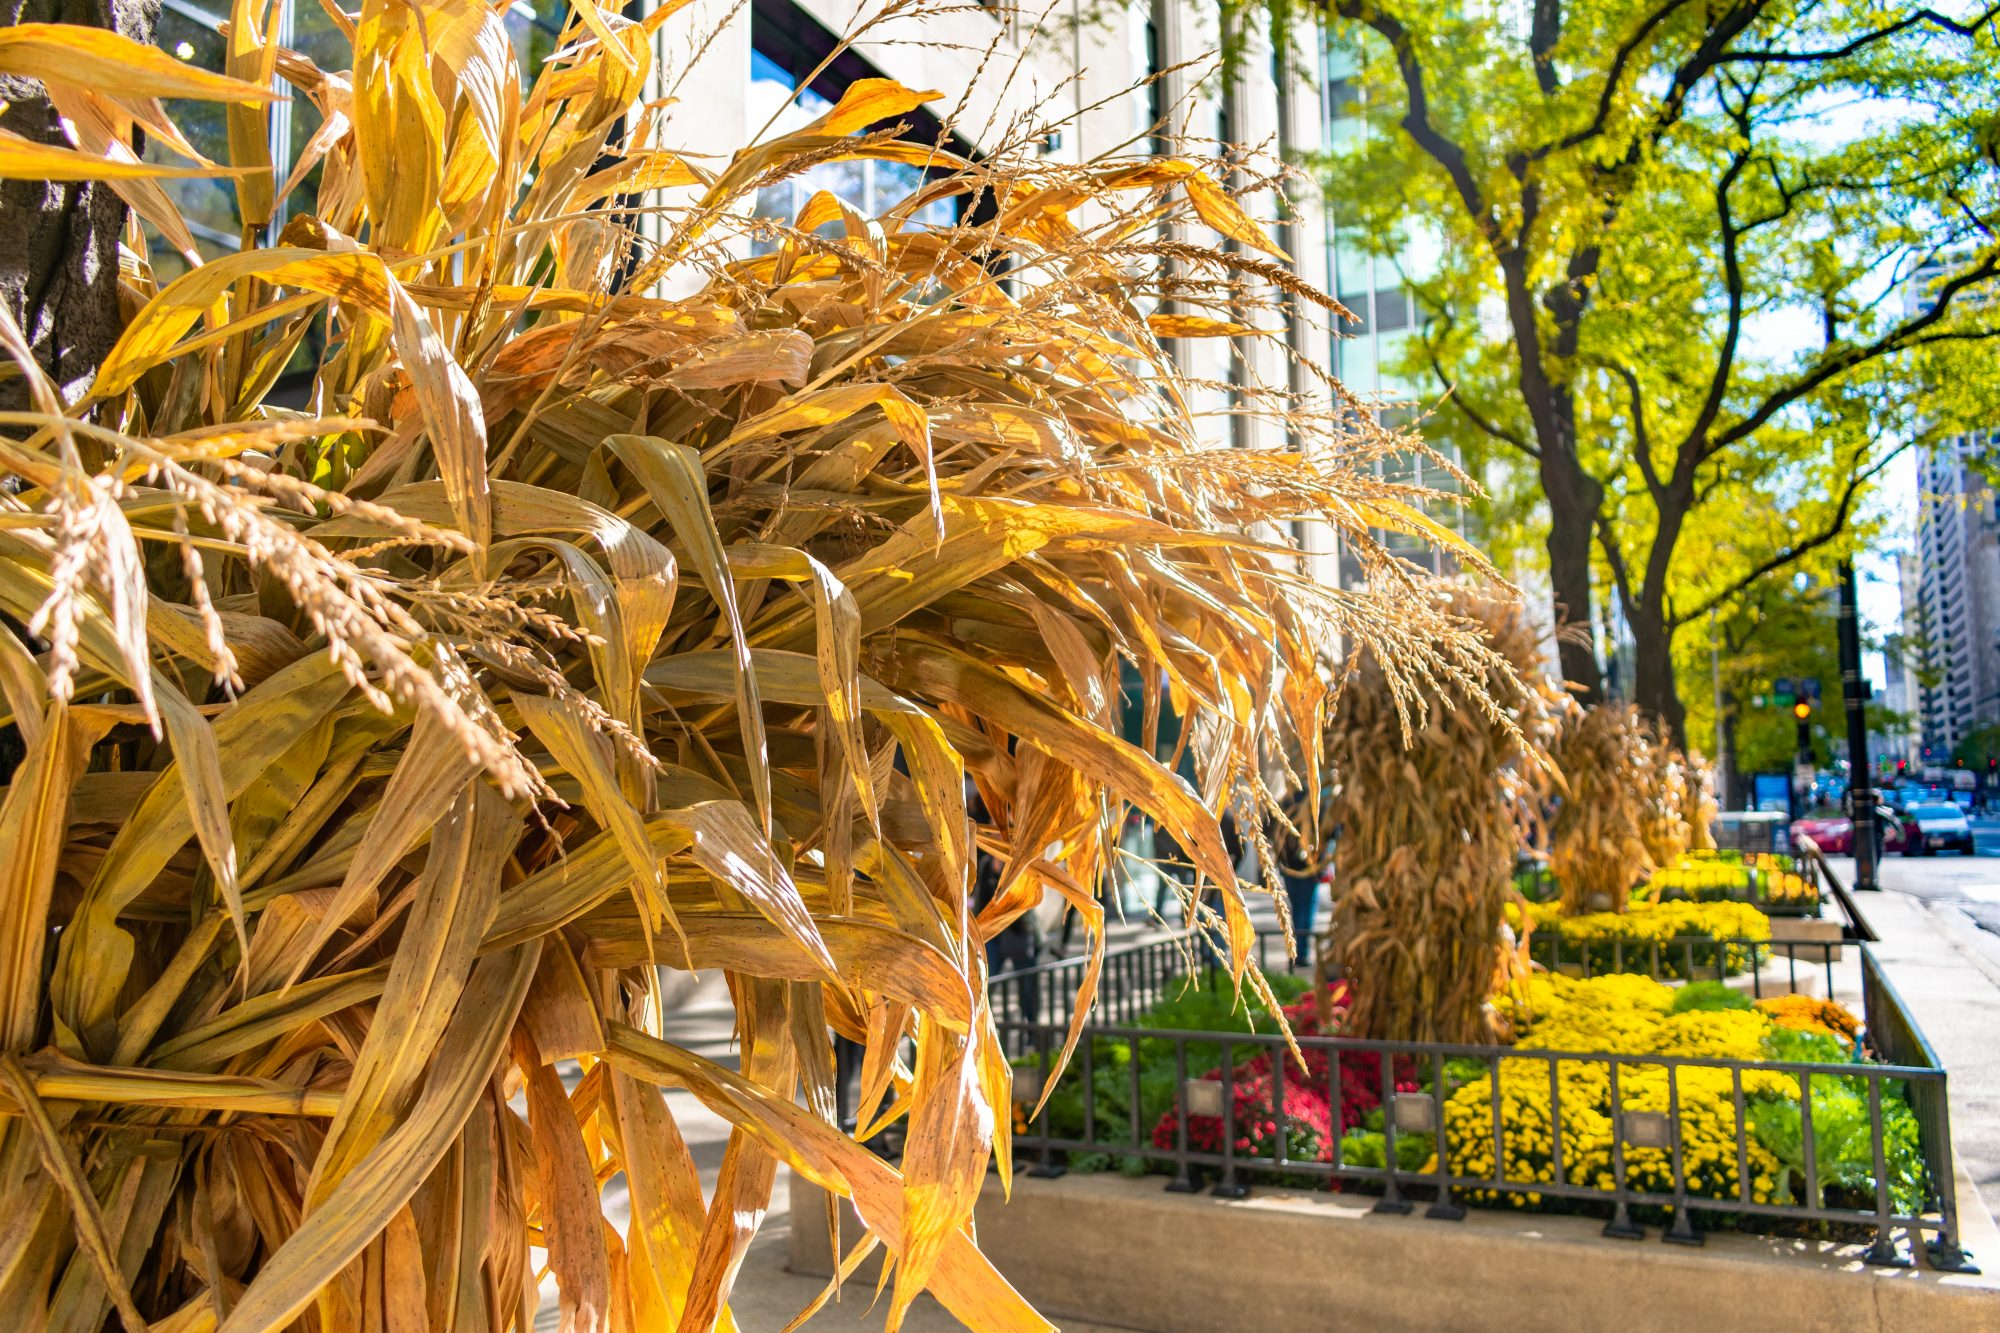 dried corn stalk decorations outside building